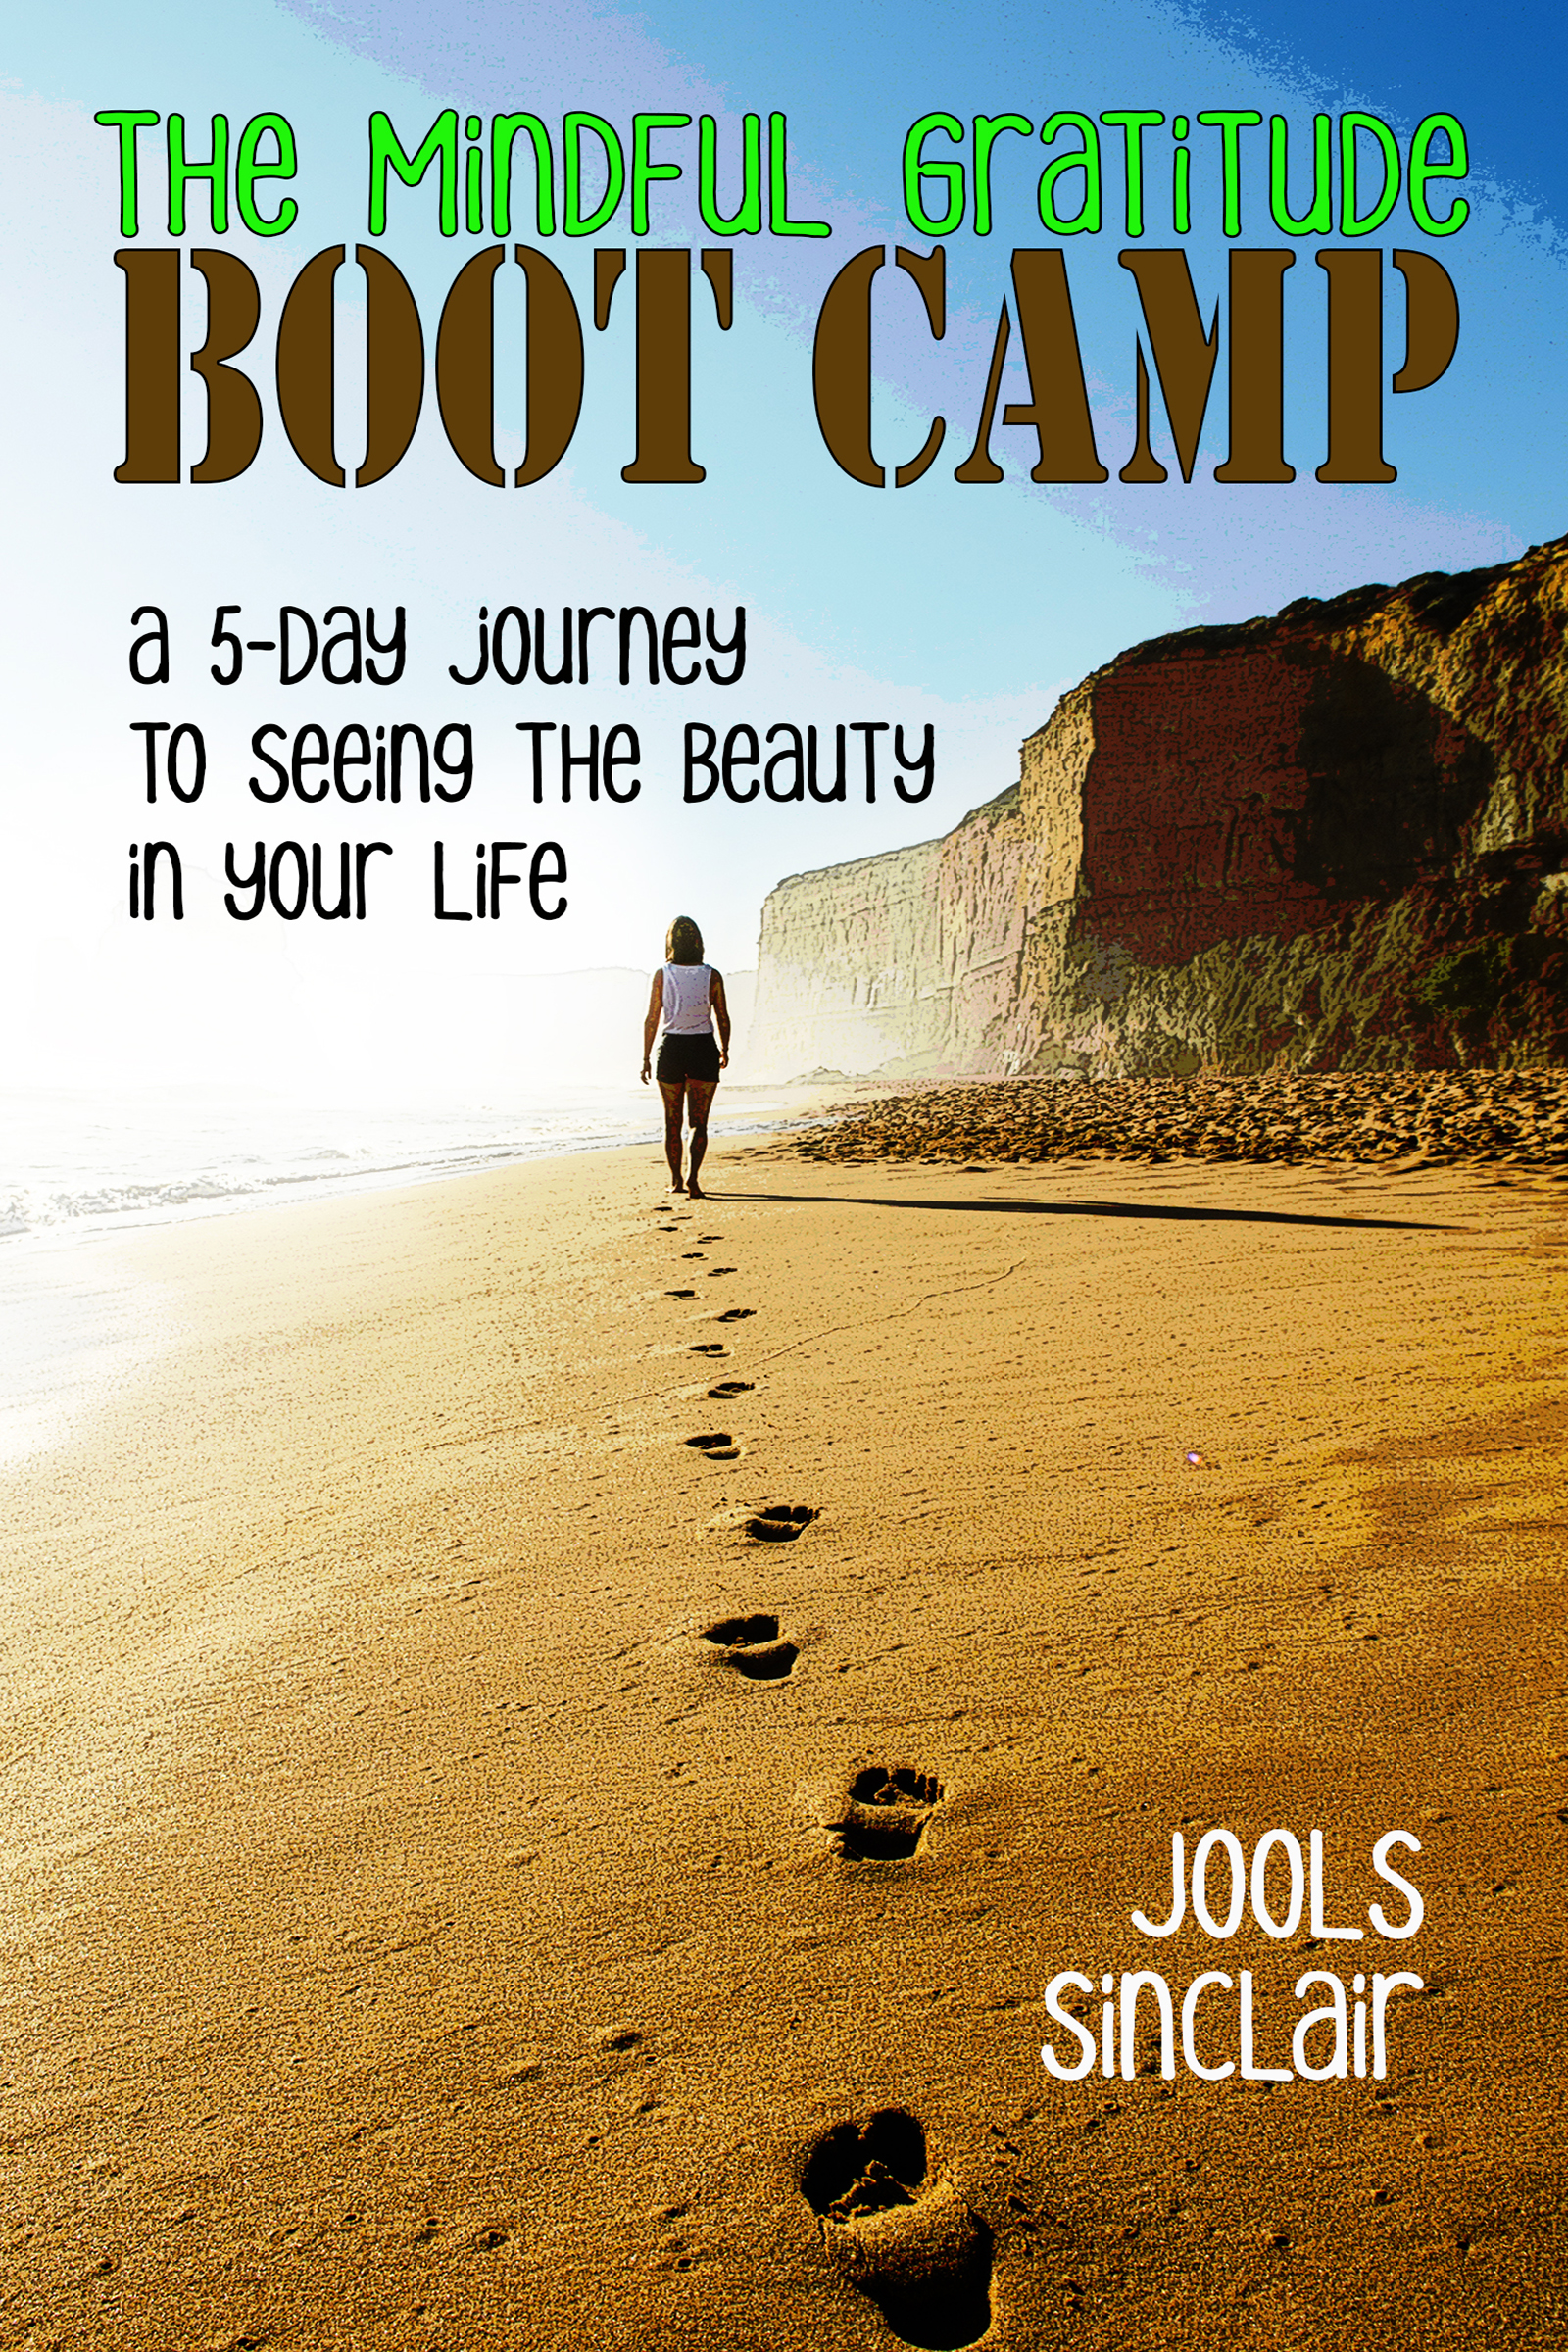 Mindful Gratitude Boot Camp Cover.jpg